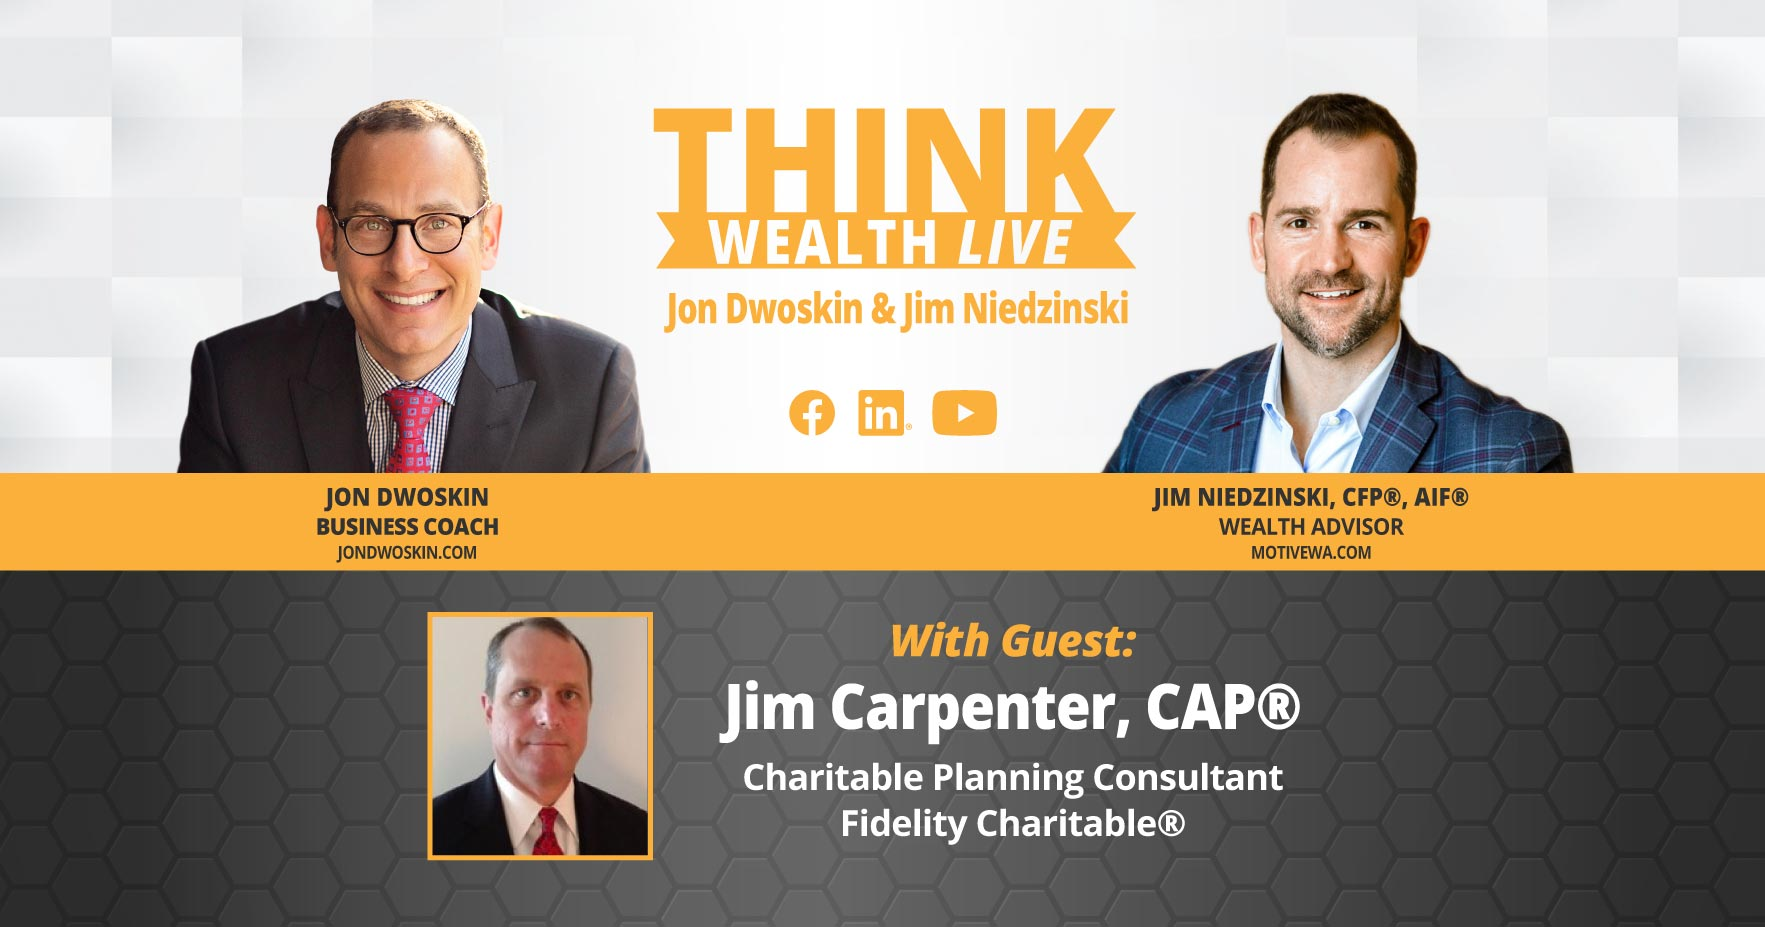 THINK Wealth LIVE: Jon Dwoskin and Jim Niedzinski Talk with Jim Carpenter